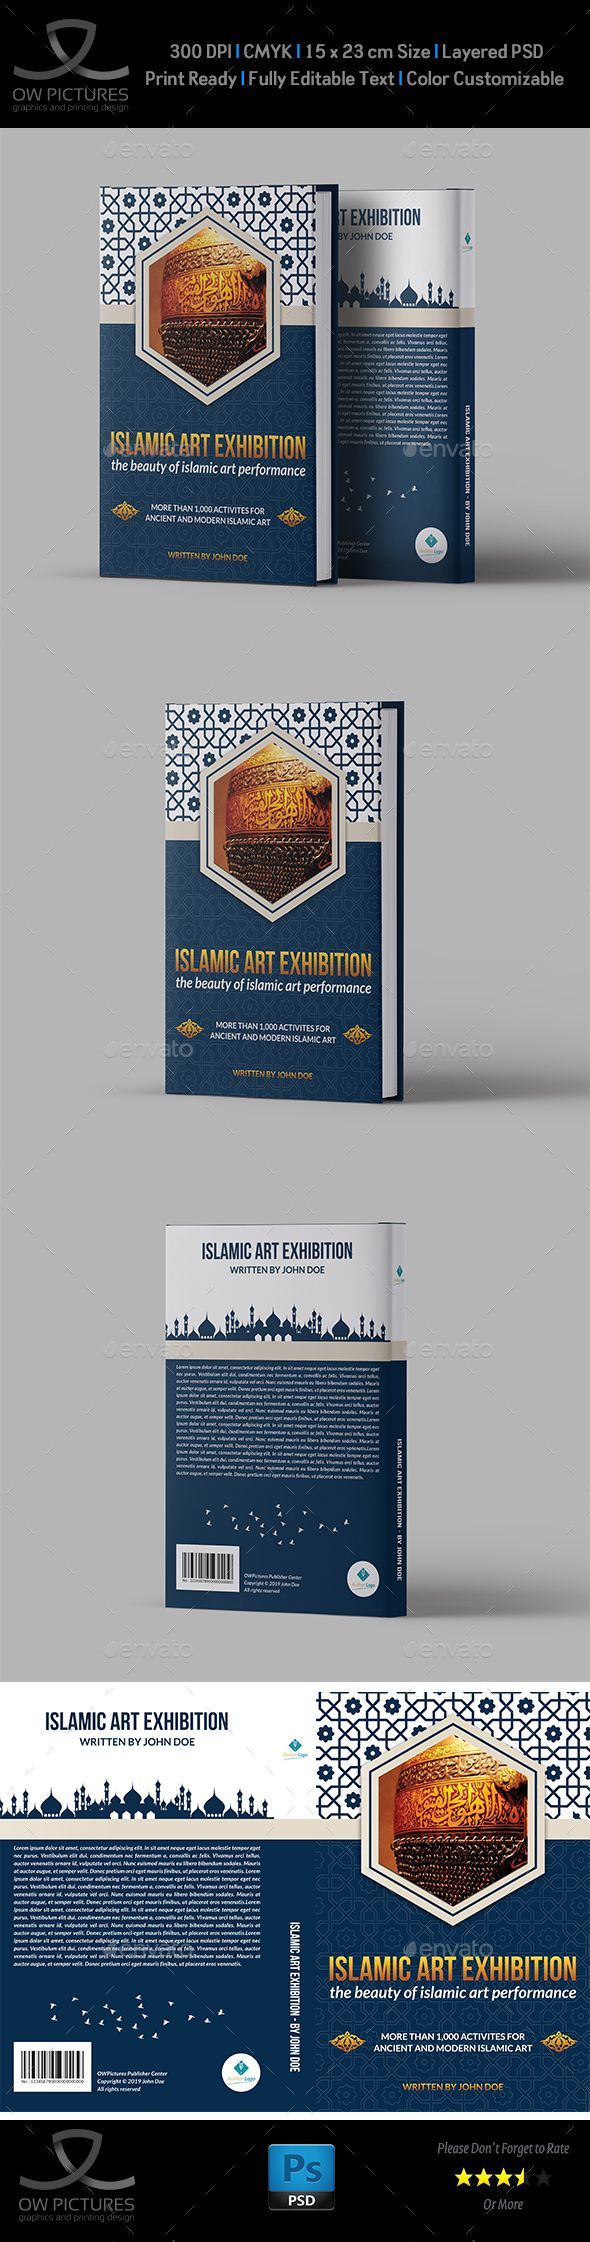 Quran Book Cover Template : Best cover template ideas on pinterest binder